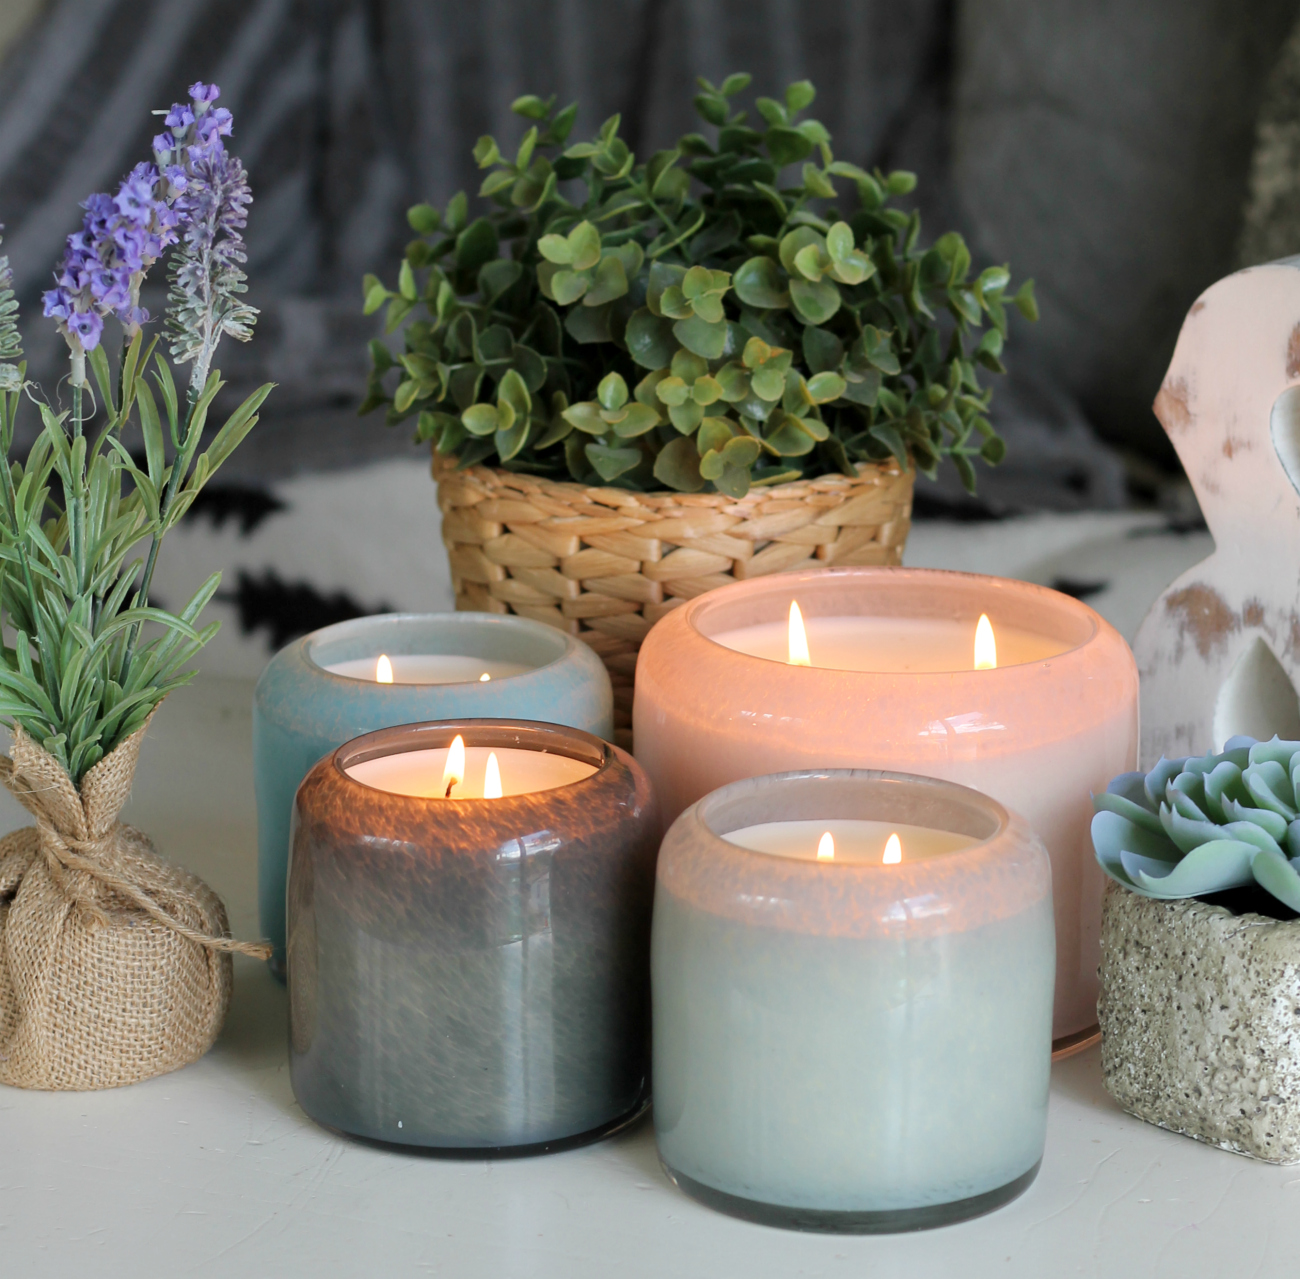 4 Must-Have Candles for Relaxation